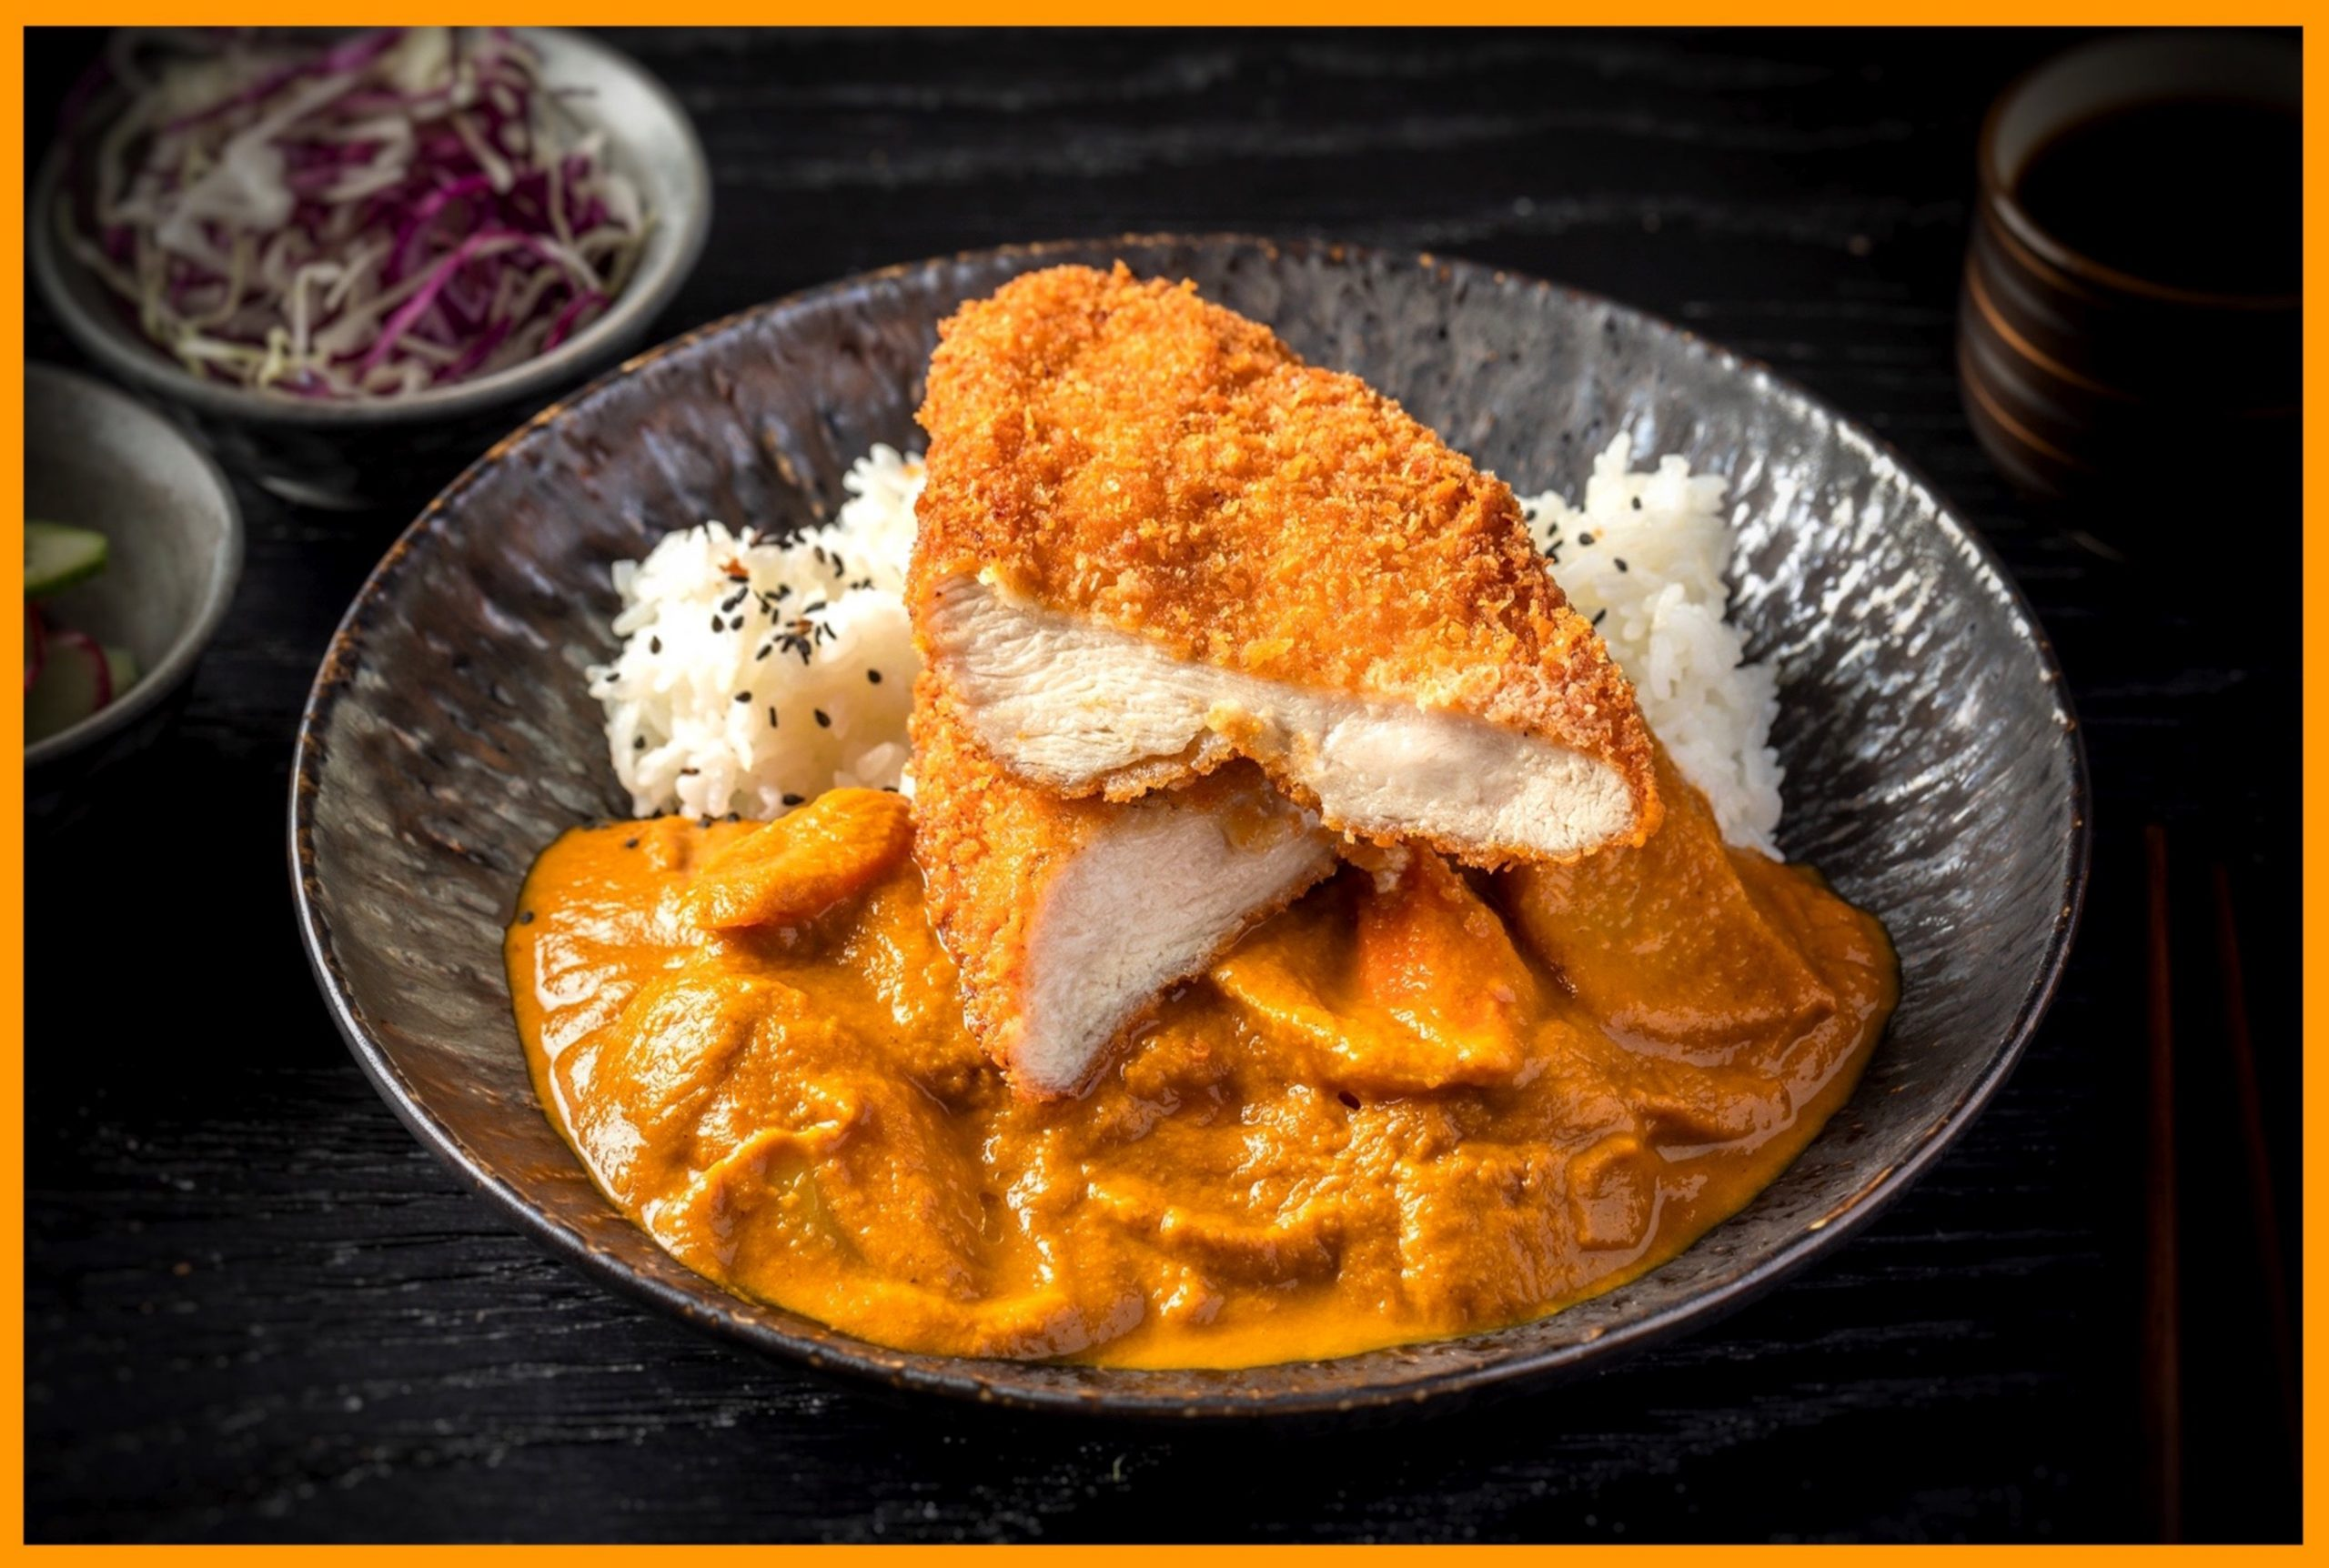 Fried chicken cutlet and curry